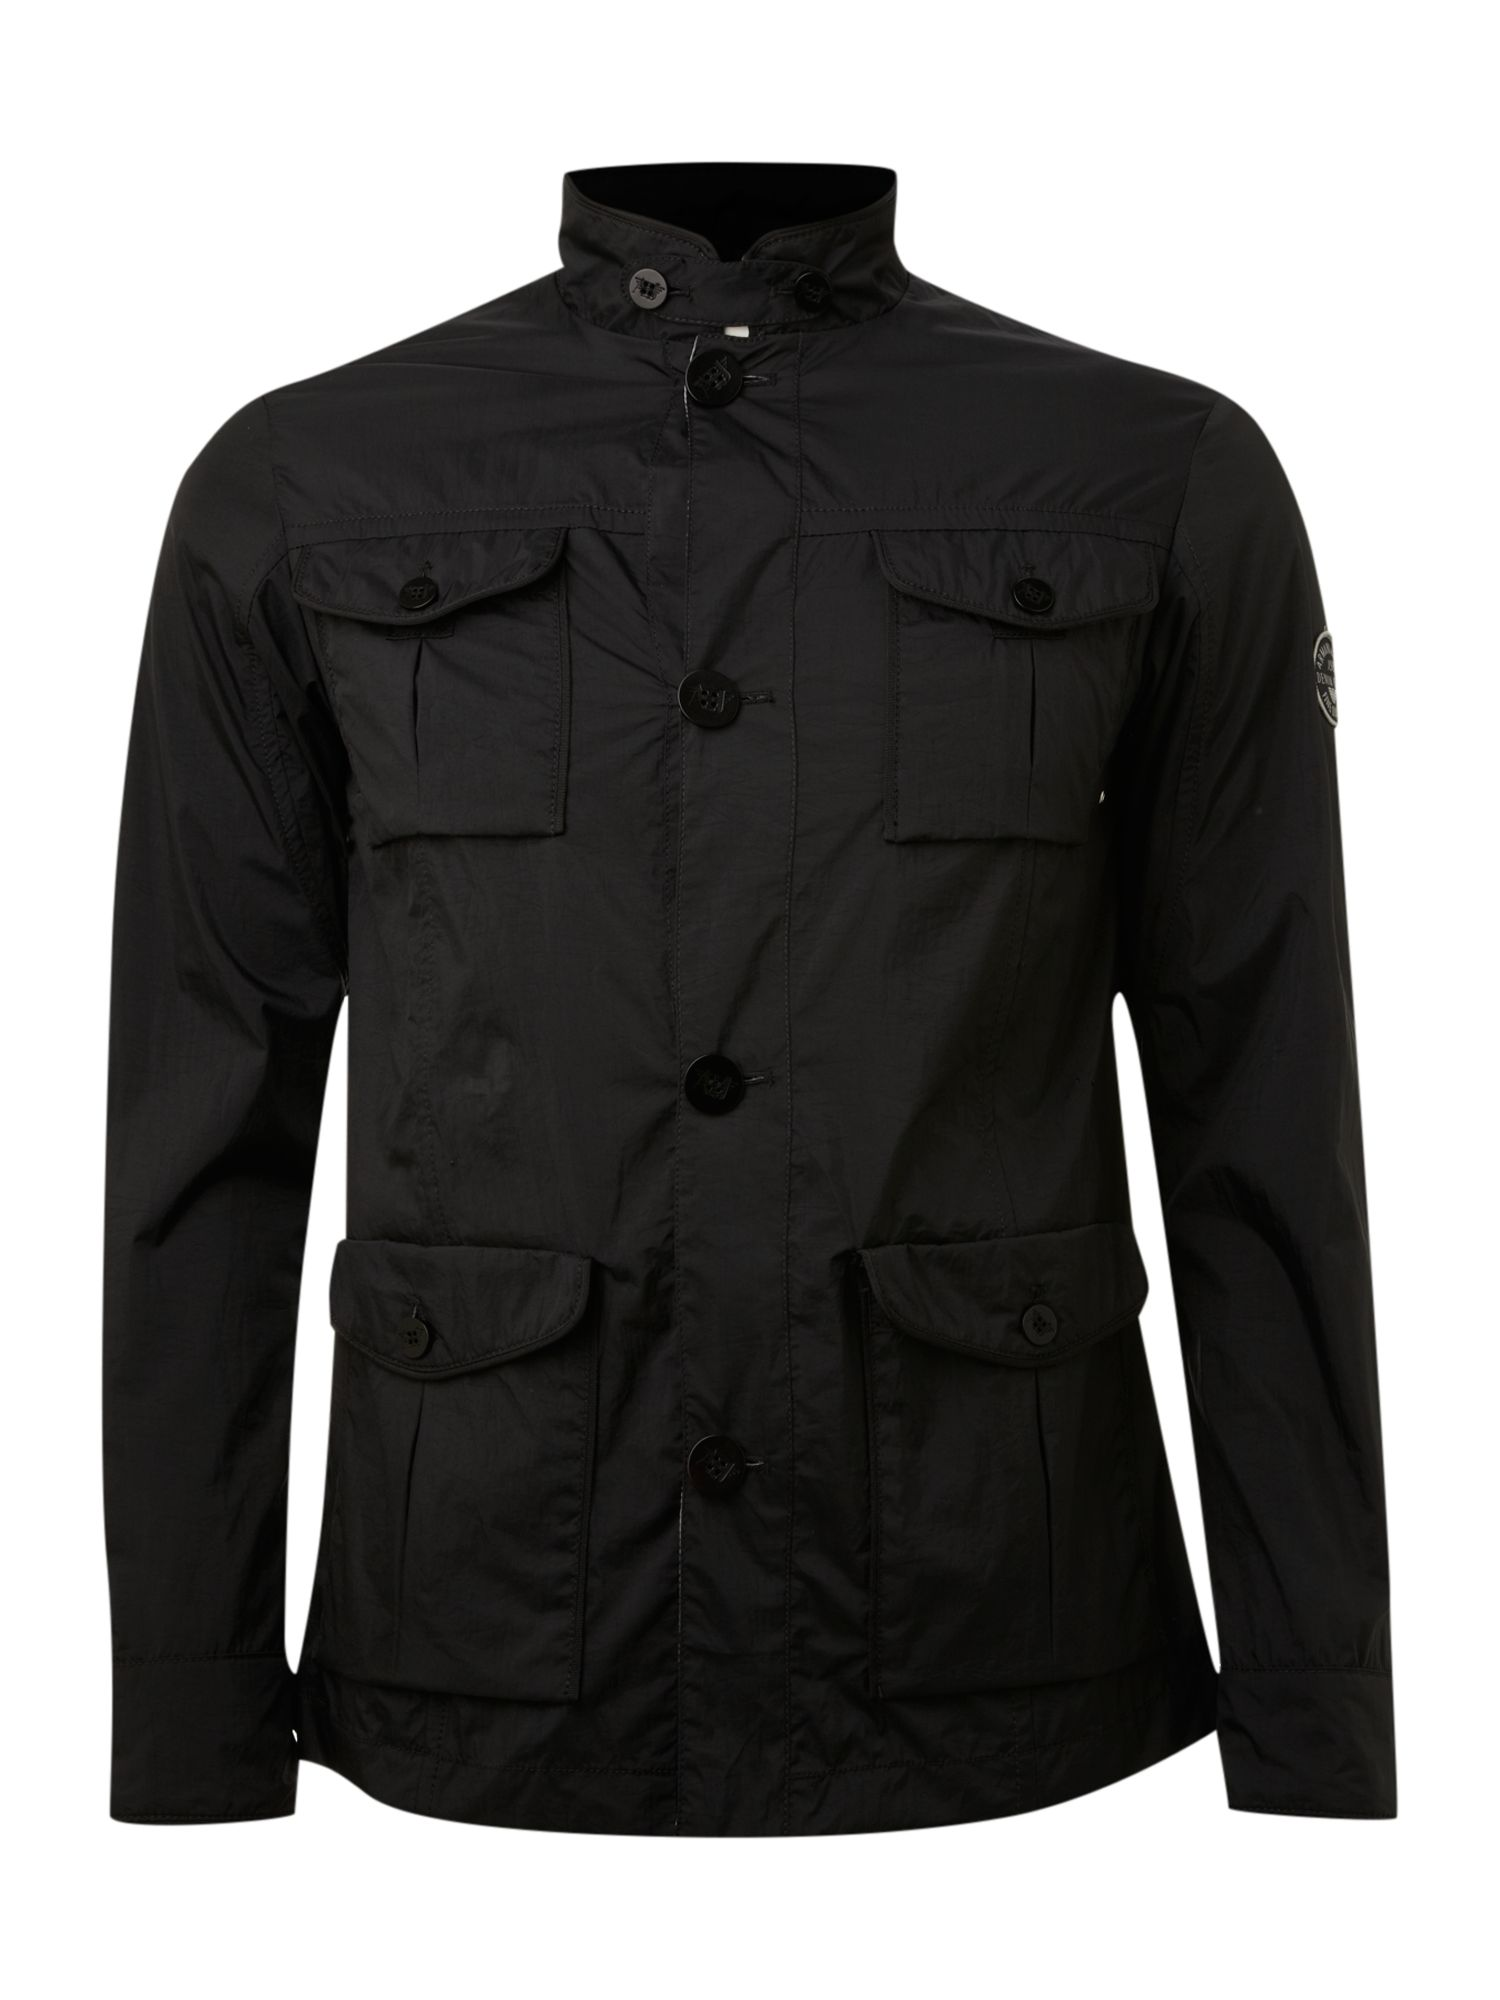 Forur pocket field jacket